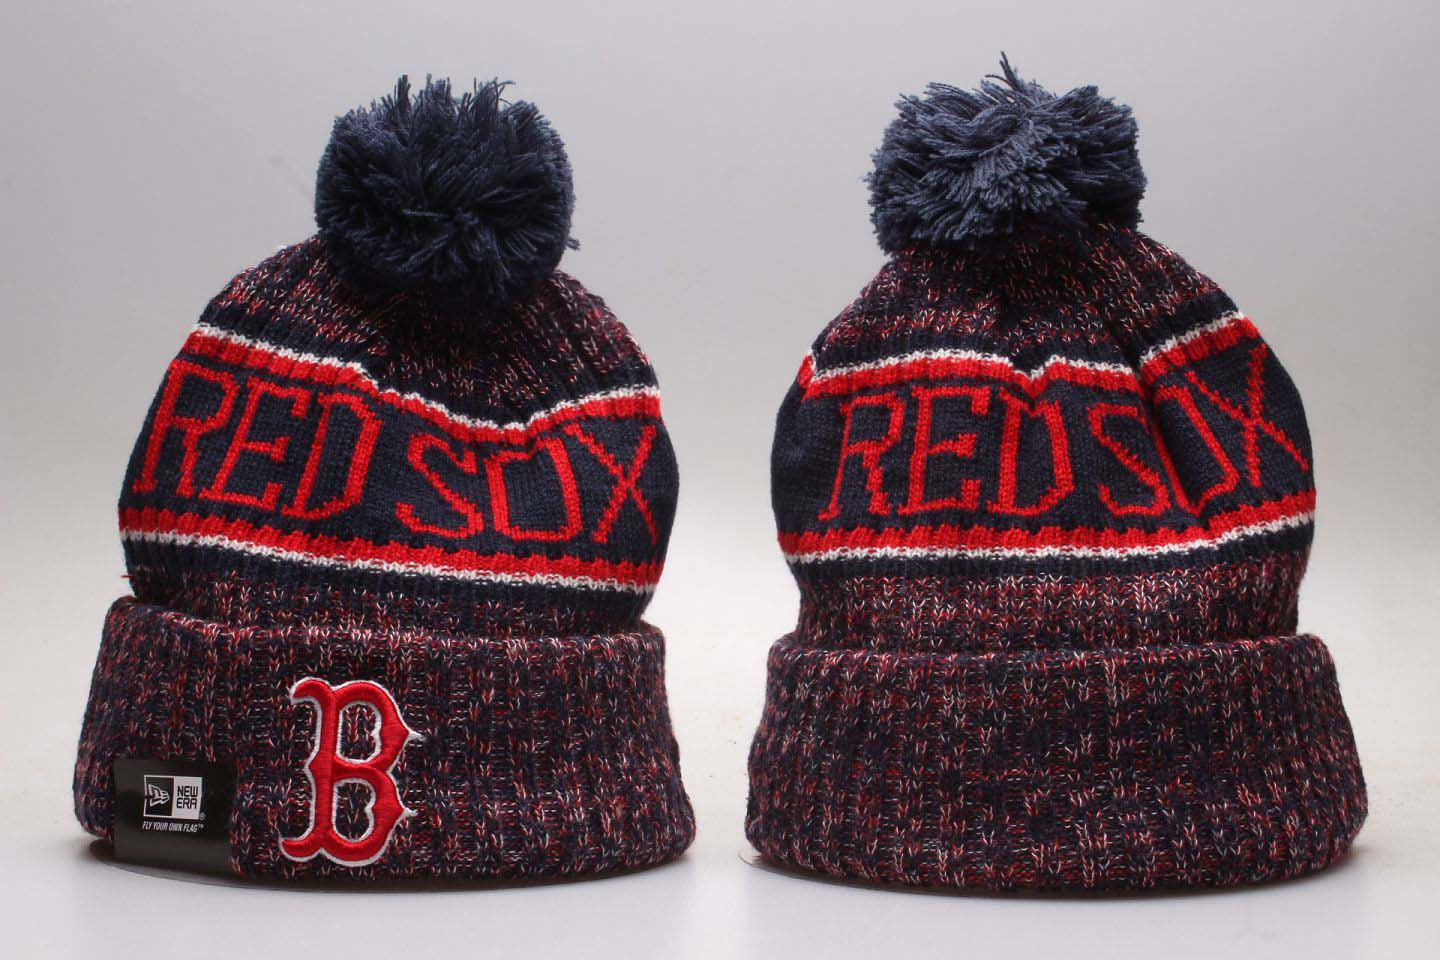 2020 MLB Boston Red Sox Beanies 10